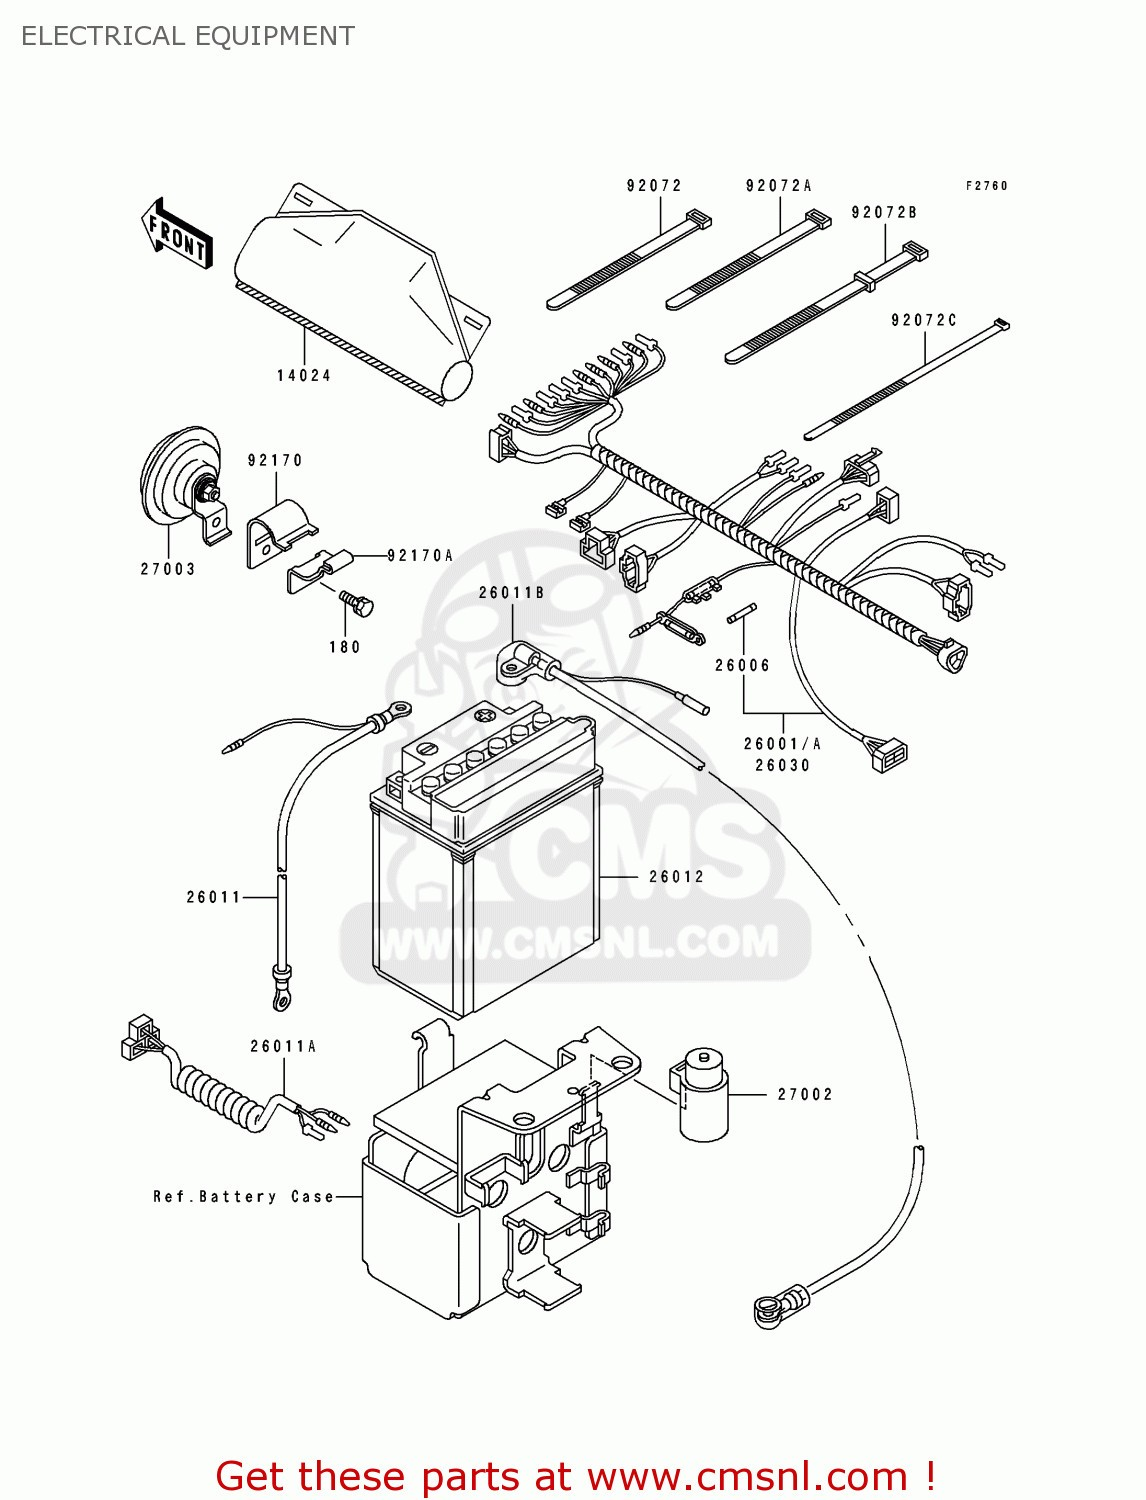 Kawasaki Bayou 300 Wiring Diagram New Wiring Diagram Image